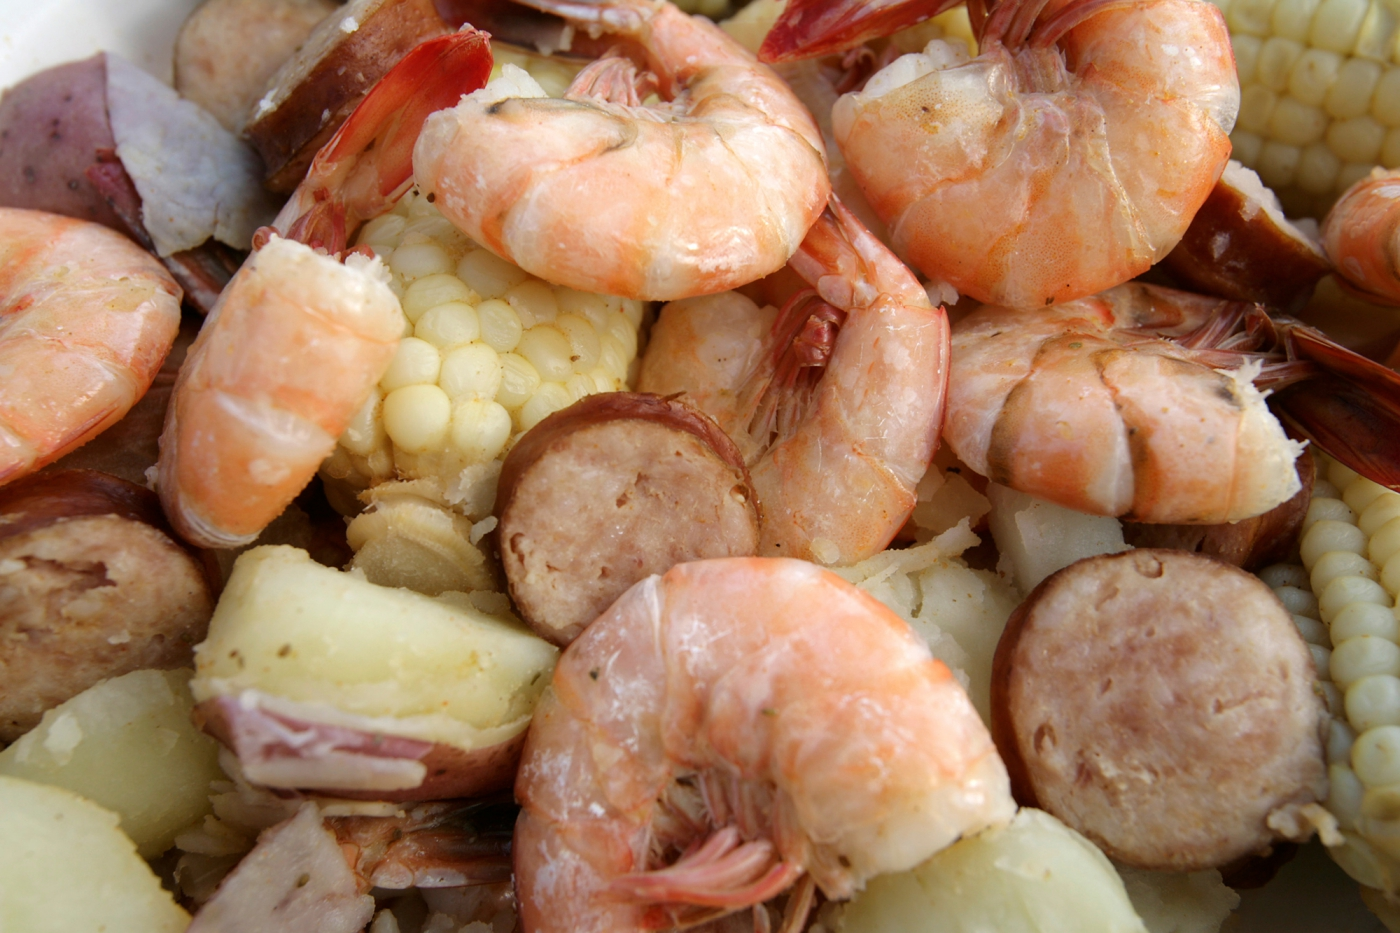 Beaufort stew, otherwise known as Frogmore stew, is a local favorite! It's a delicious combination of boiled shrimp, corn, potatoes and kielbasa sausage.